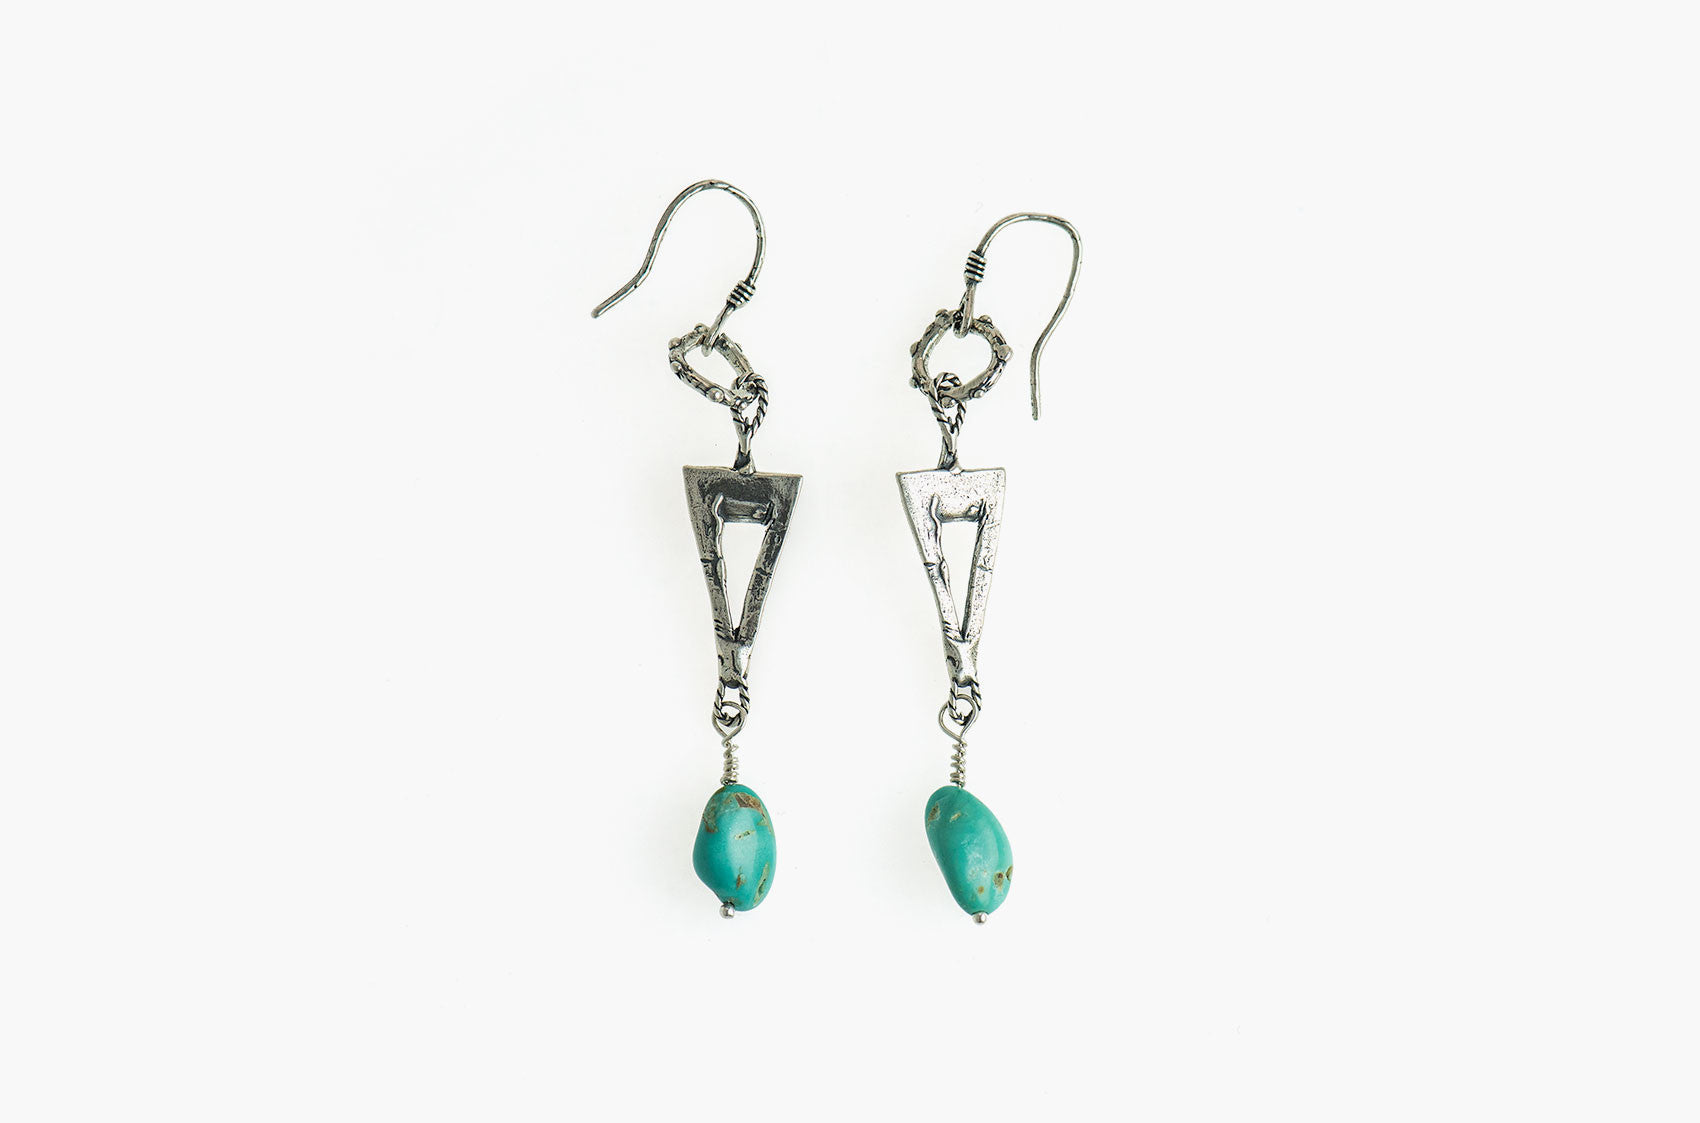 Silver & Stone. Artisan triangle earrings